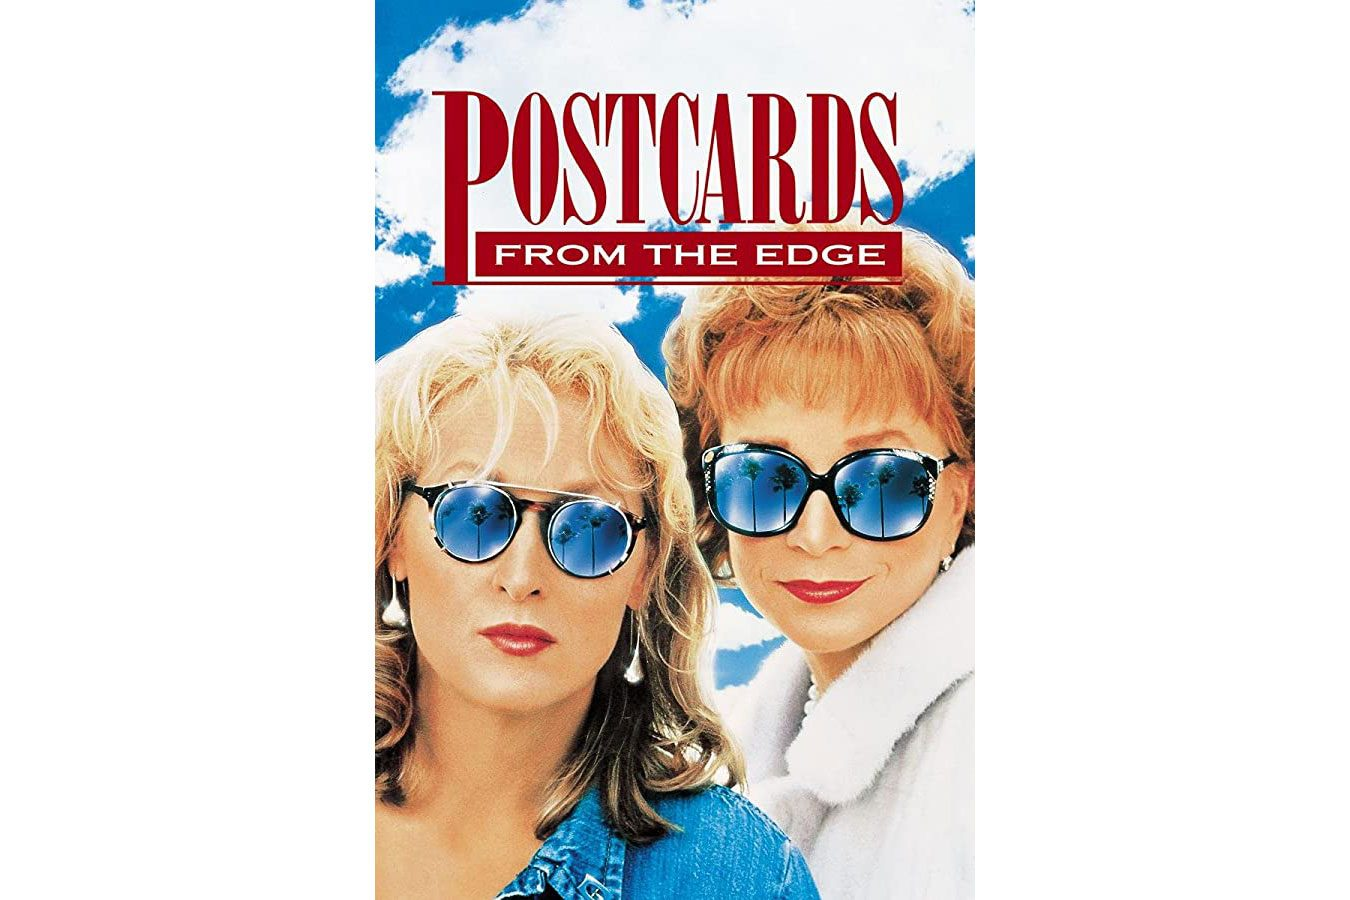 6. Postcards from the Edge (1990)